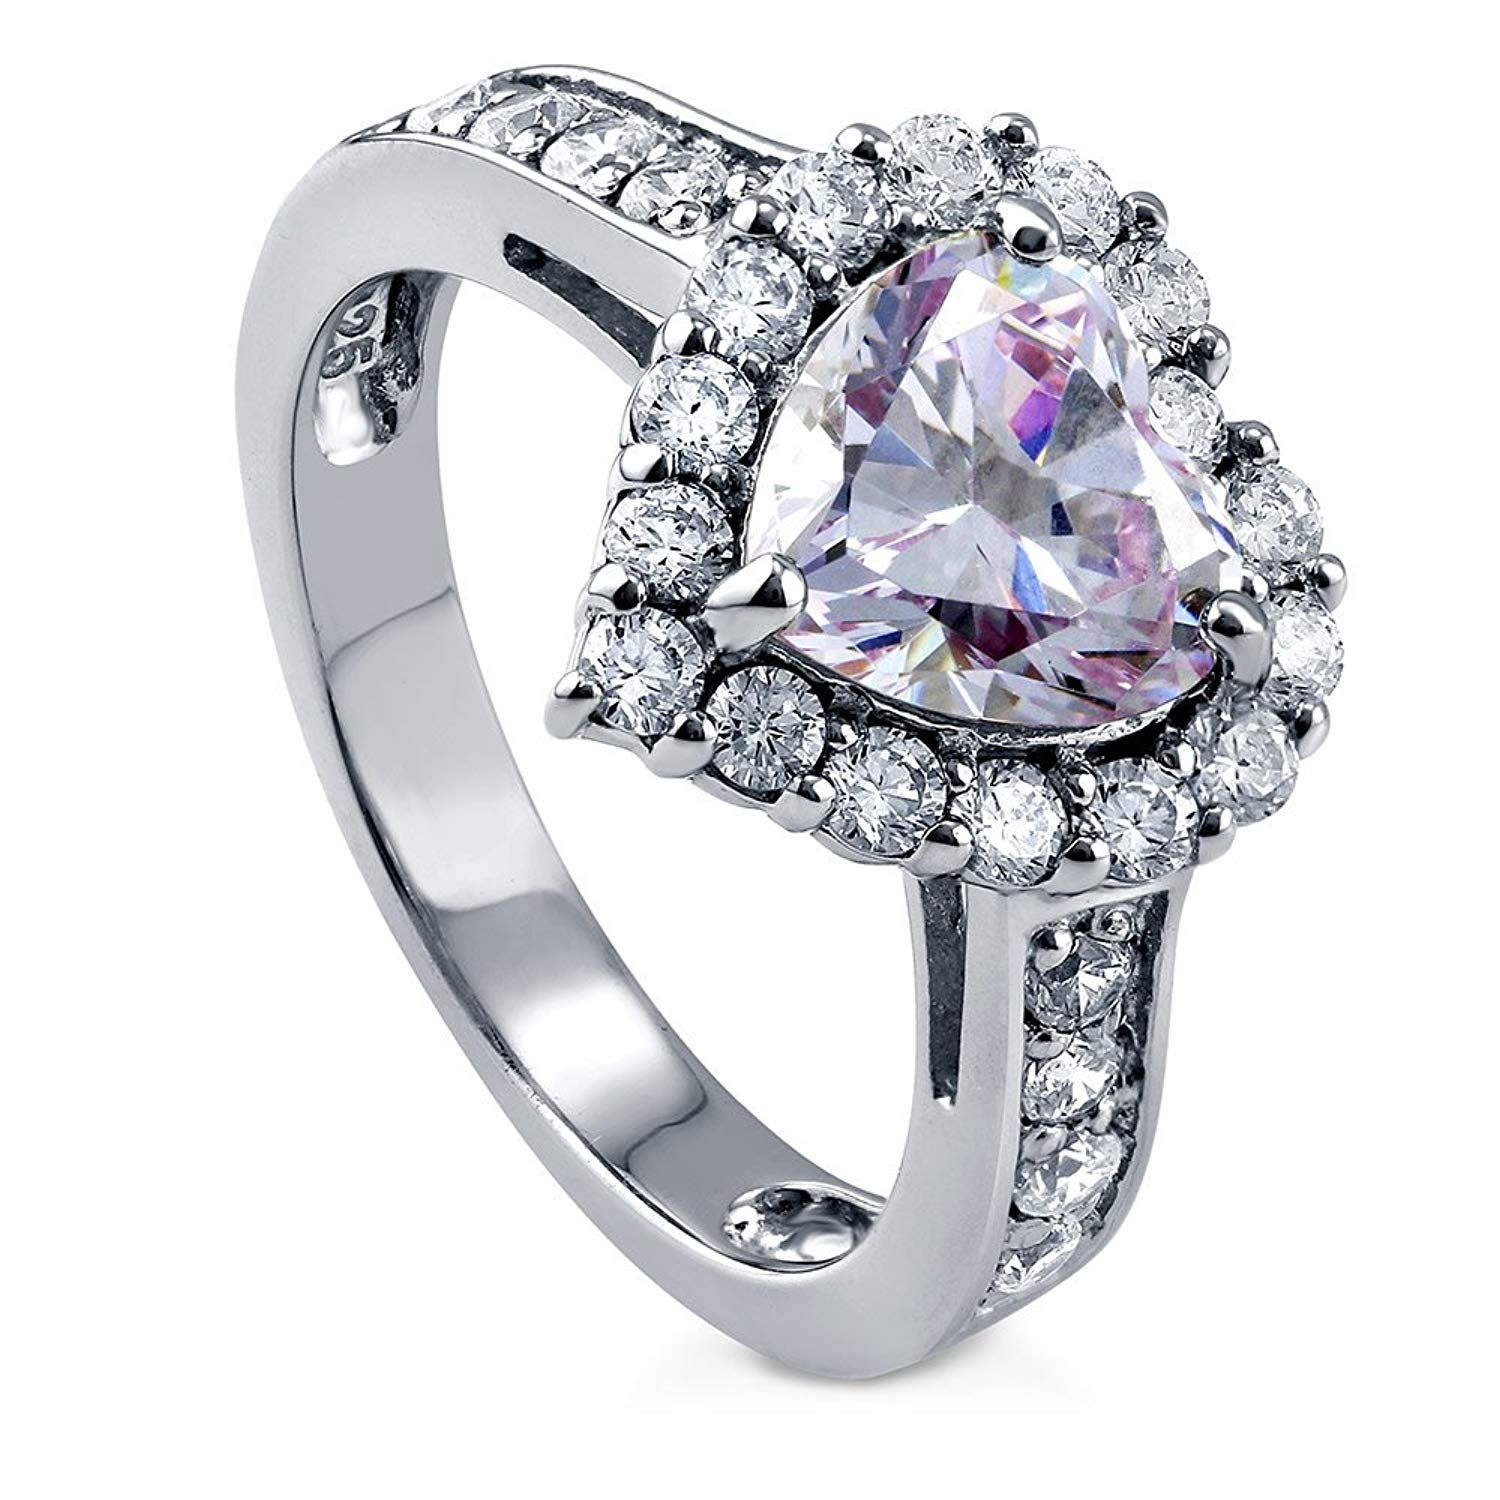 Berricle rhodium plated silver heart shaped purple cubic